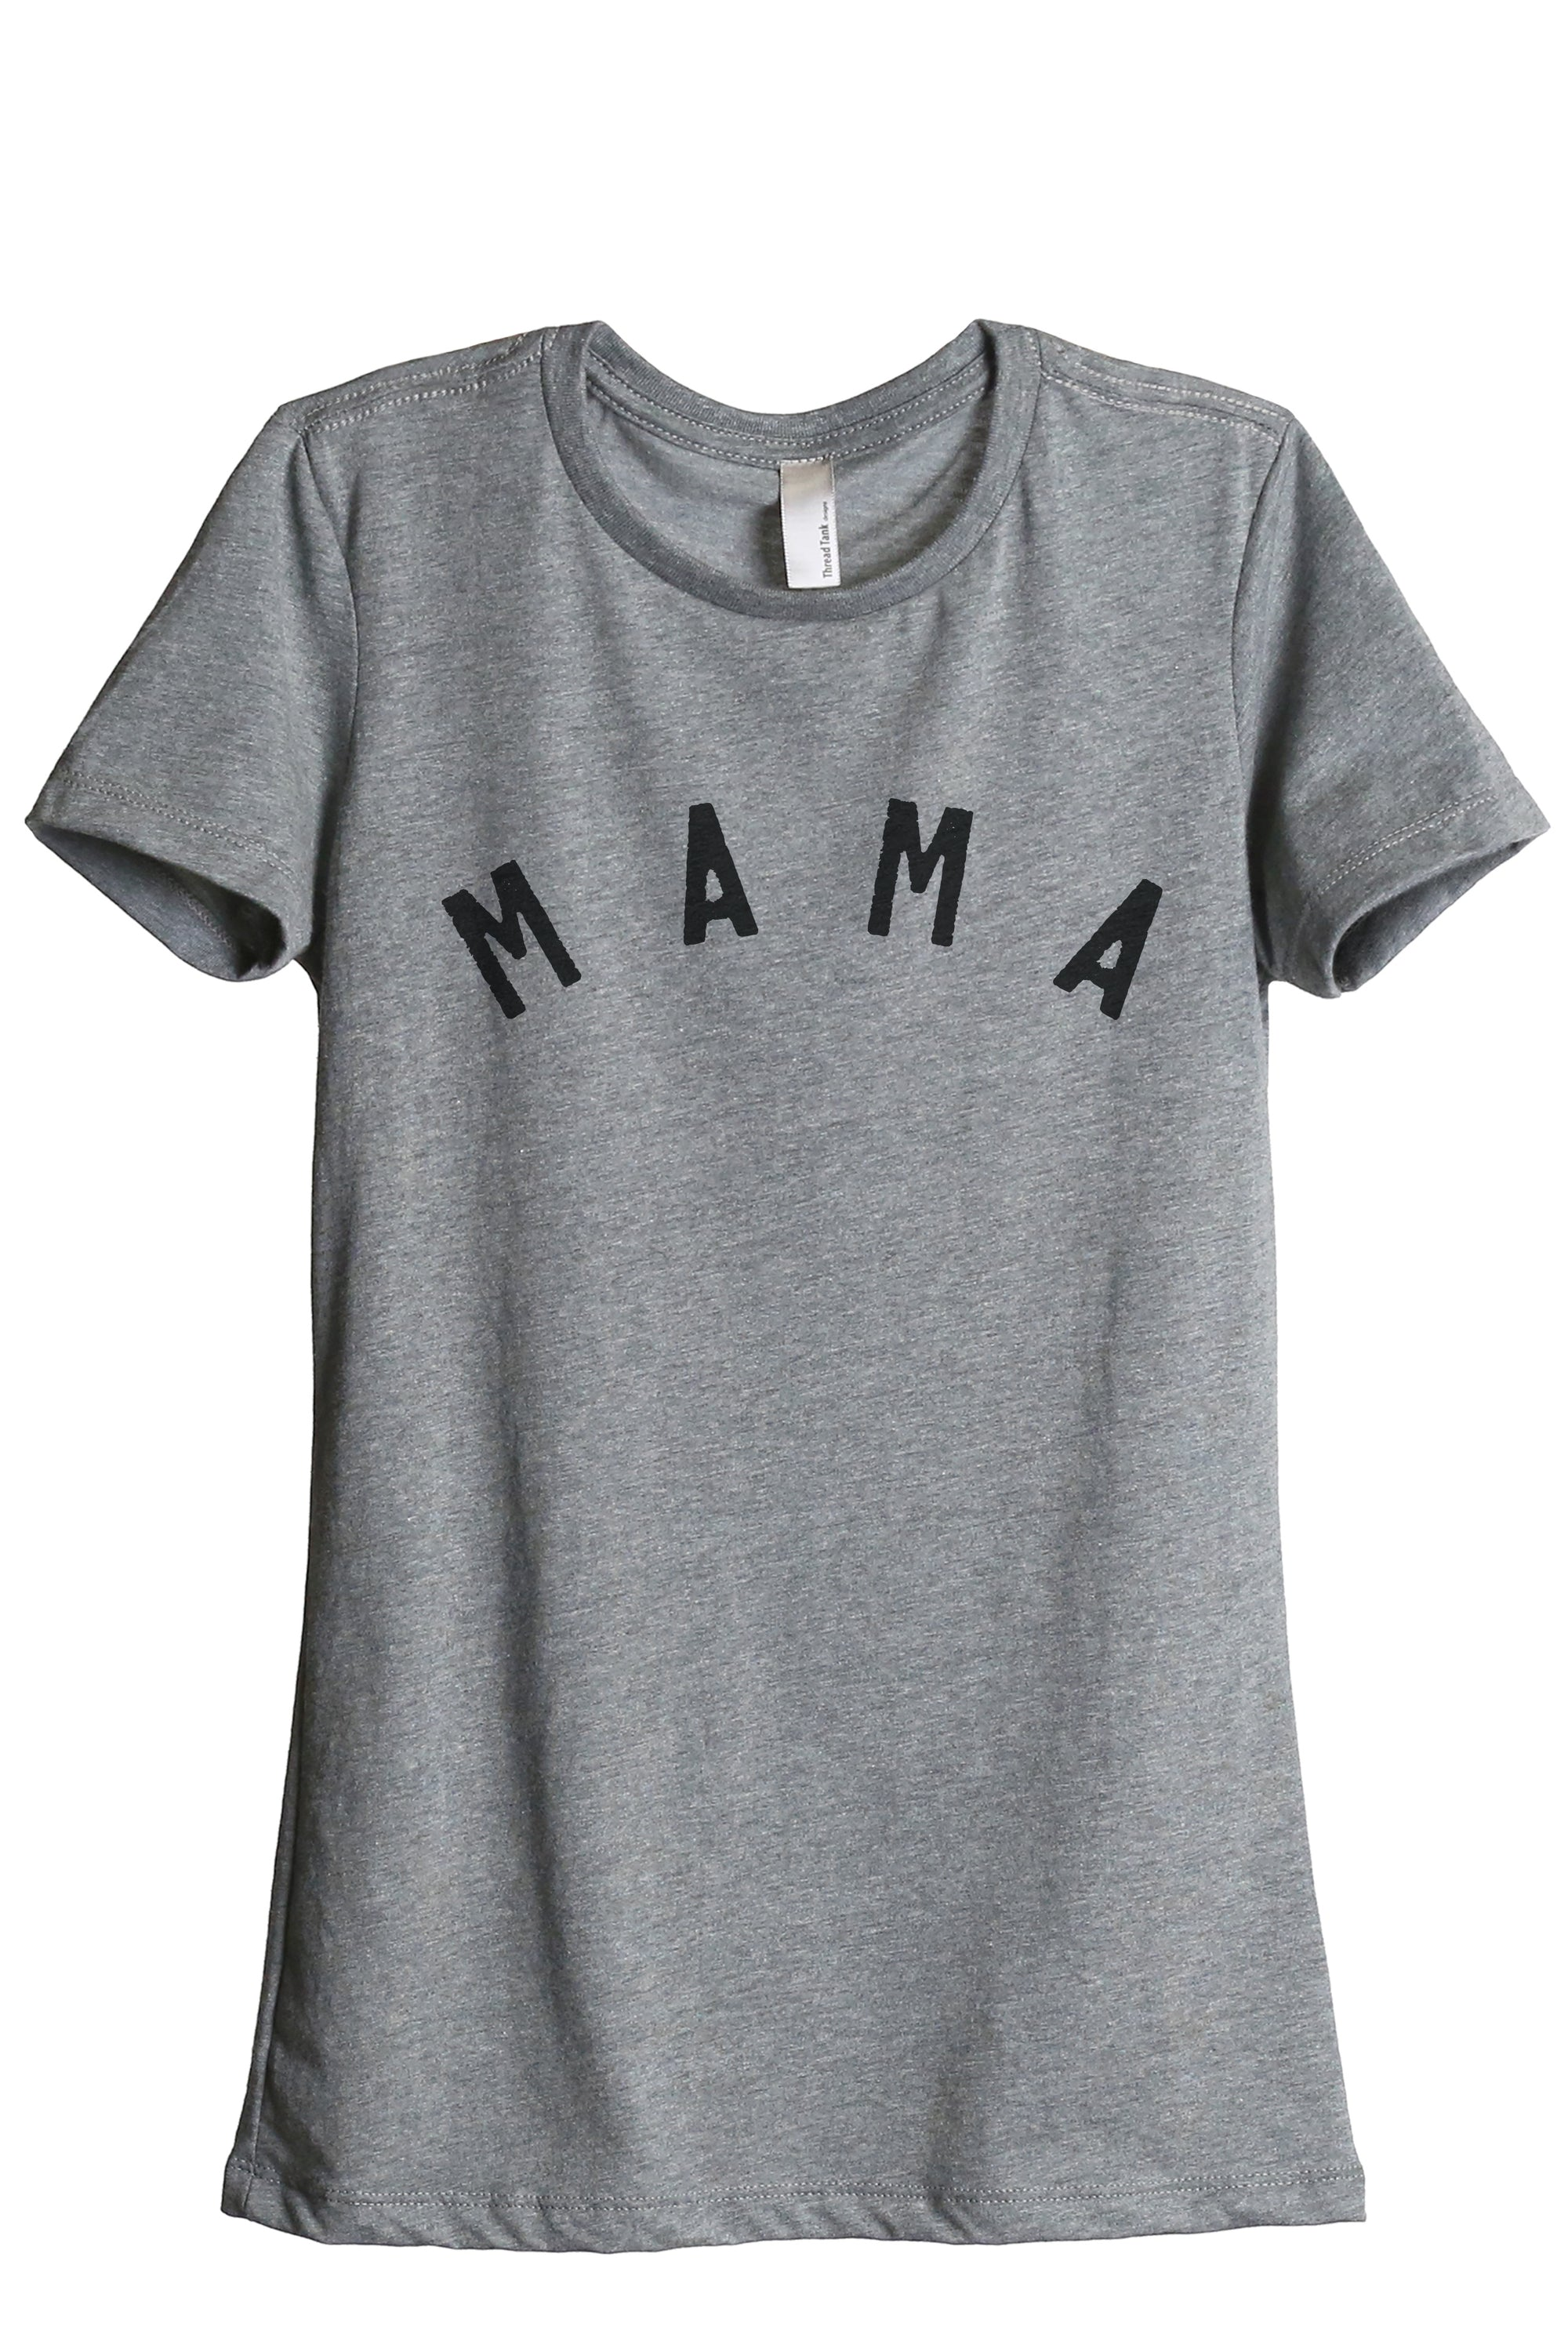 Simply Mama Women's Relaxed Crewneck T-Shirt Top Tee Charcoal Grey